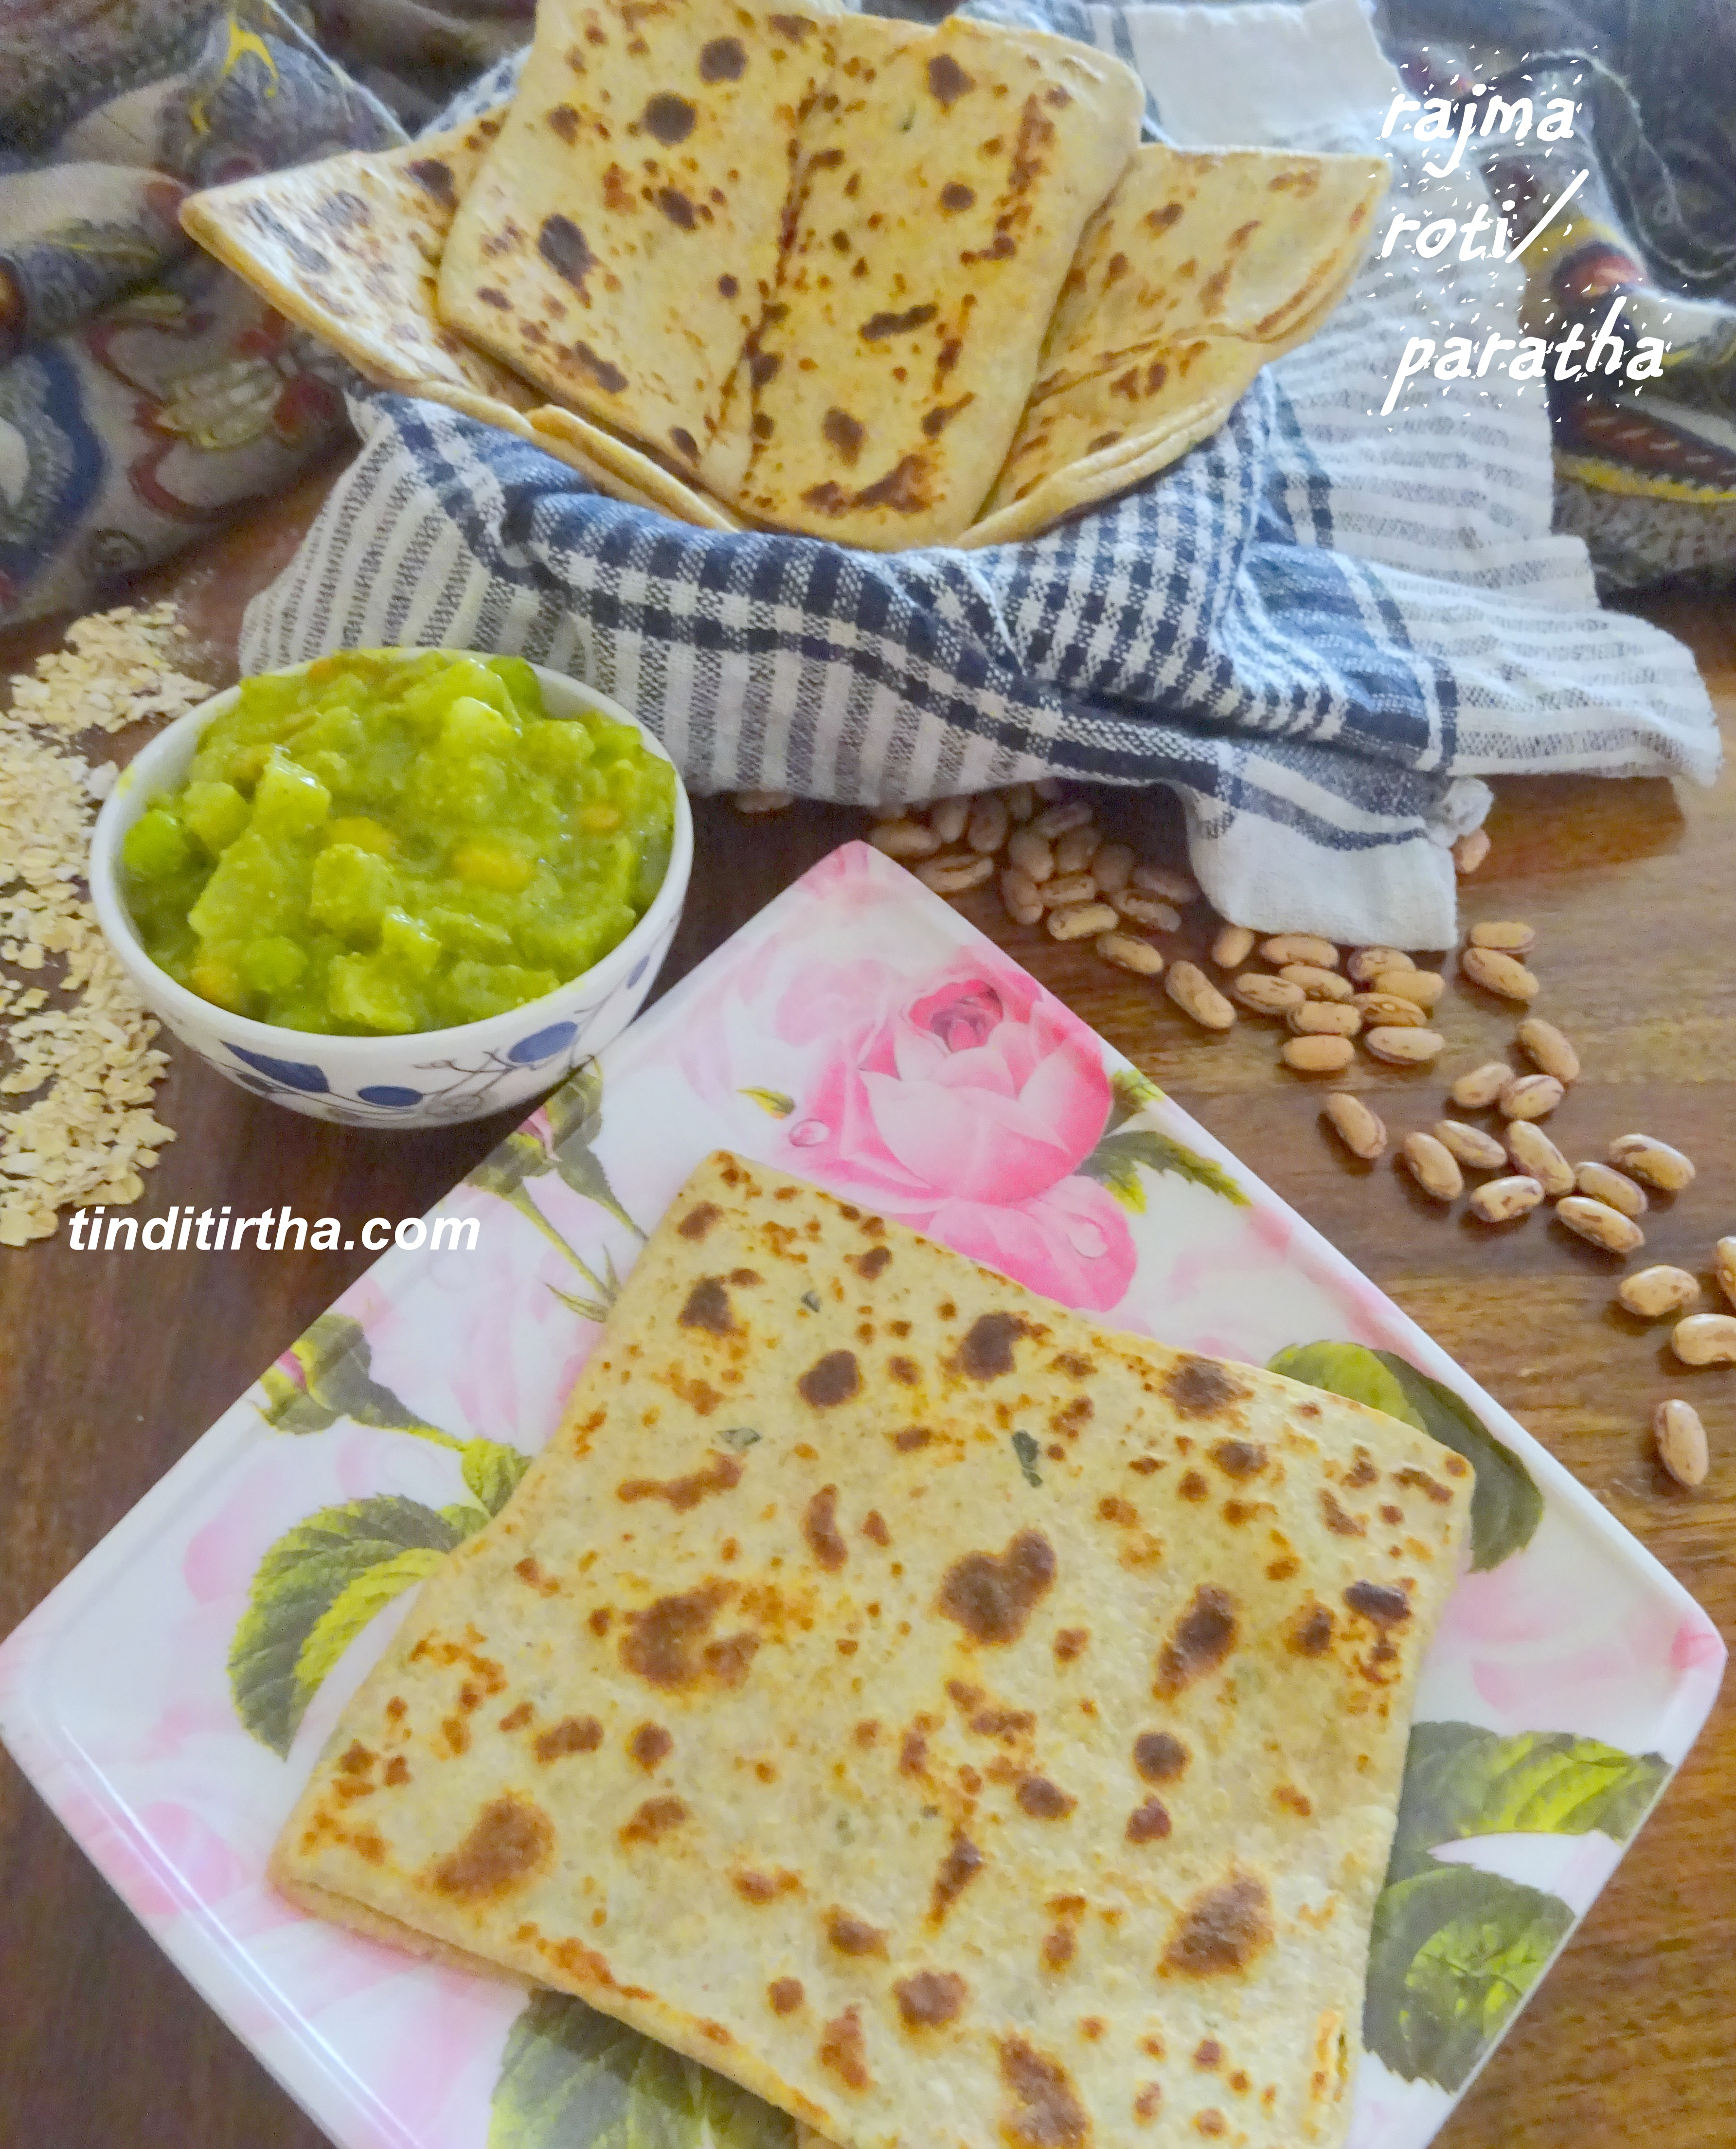 RAJMA/KIDNEY BEANS ROTI/PARATHA….also with the goodness of oats